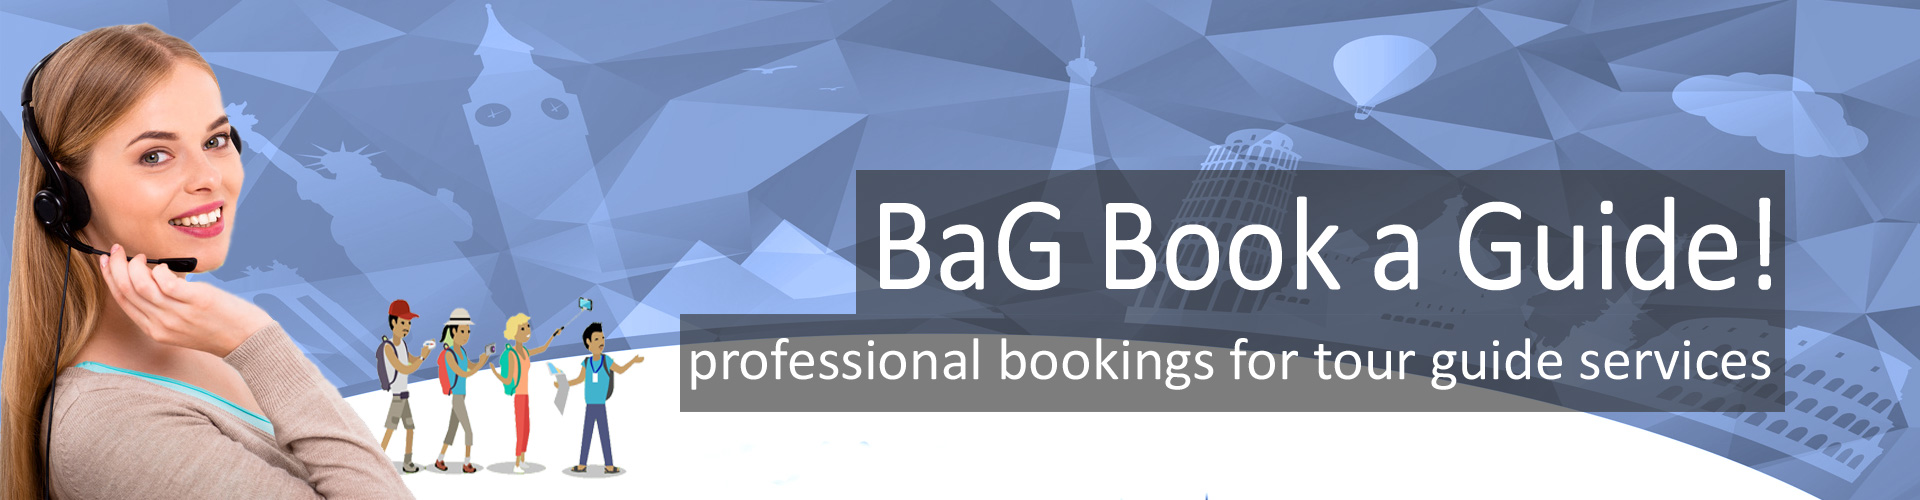 bag-book-a-guide-blue-text